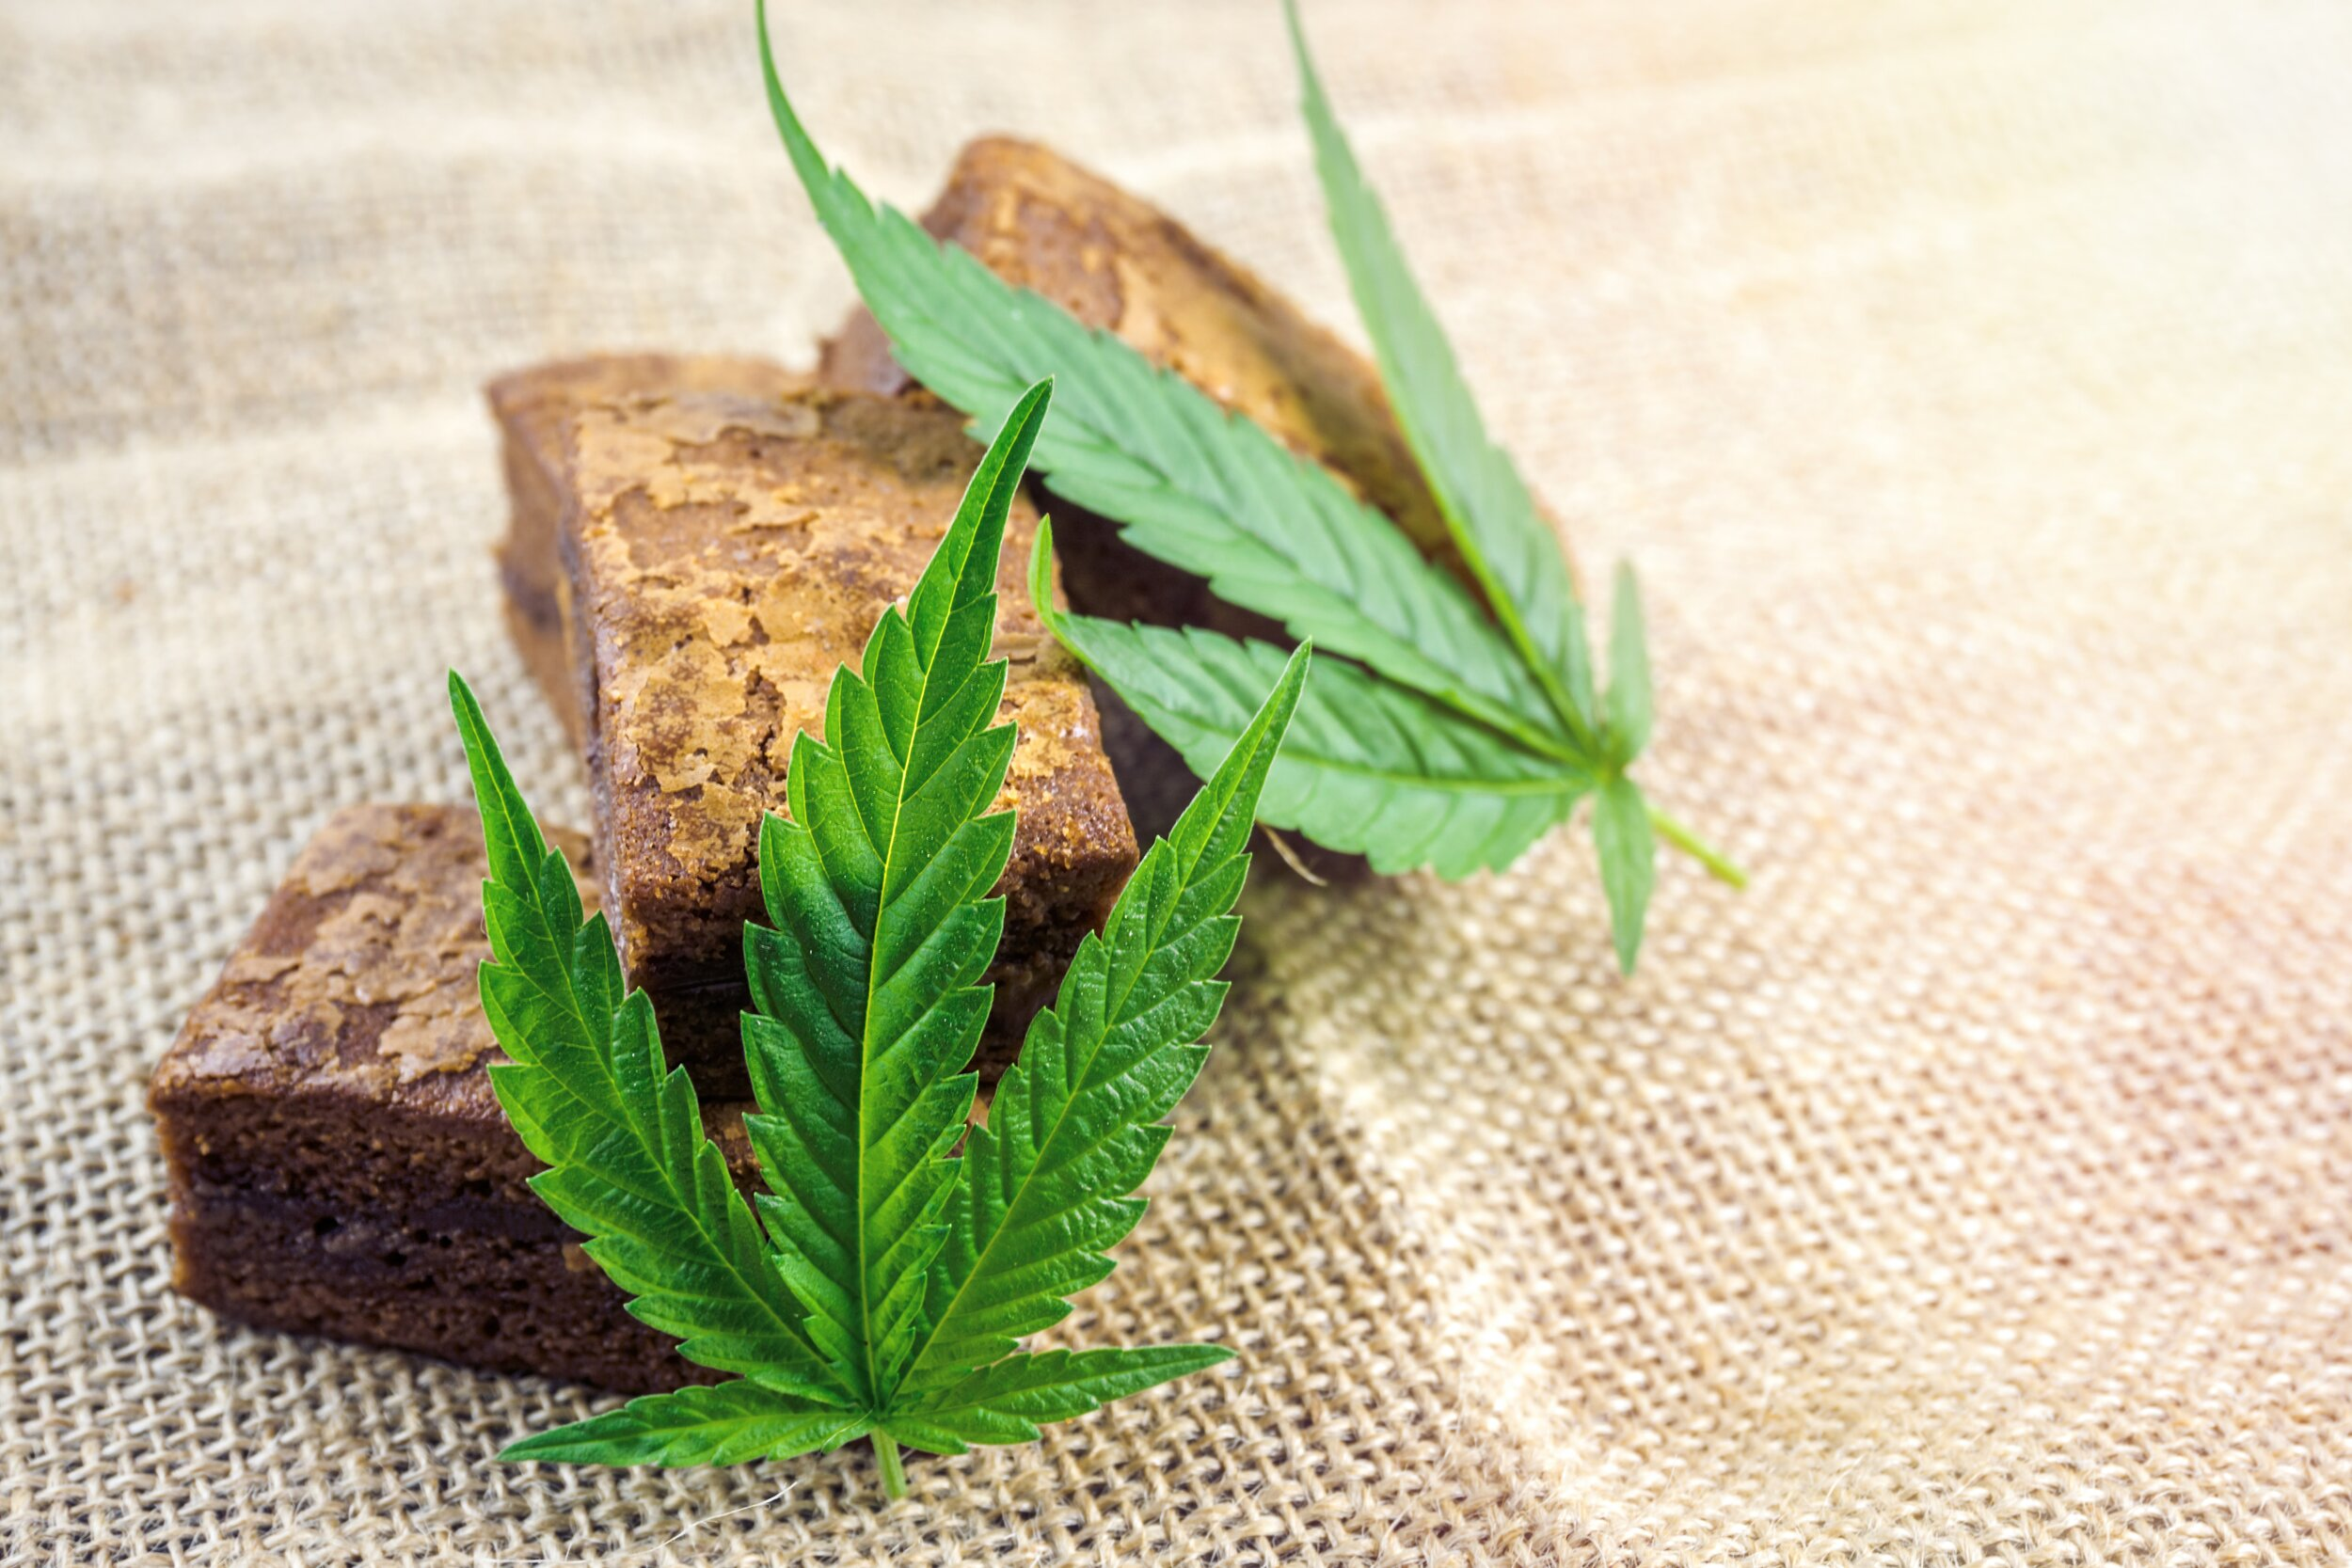 A cannabis edible, also known as a cannabis-infused food or simply an edible, is a food product that contains cannabinoids, especially tetrahydrocannabinol (THC).